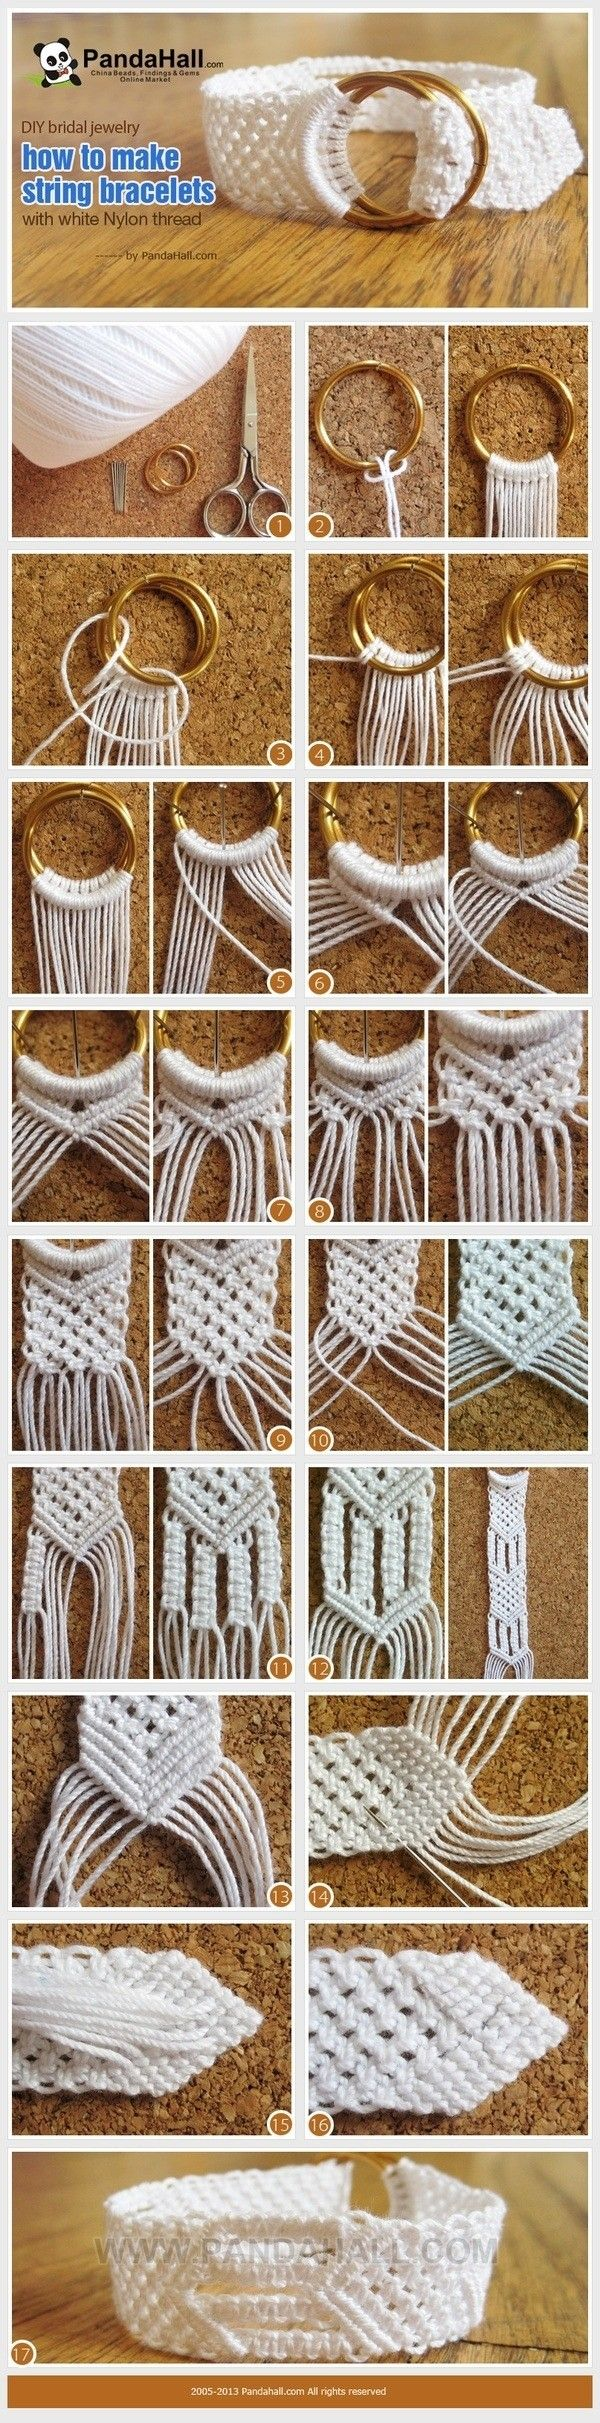 DIY bracelet tutorial...could be a cute belt if made long enough.